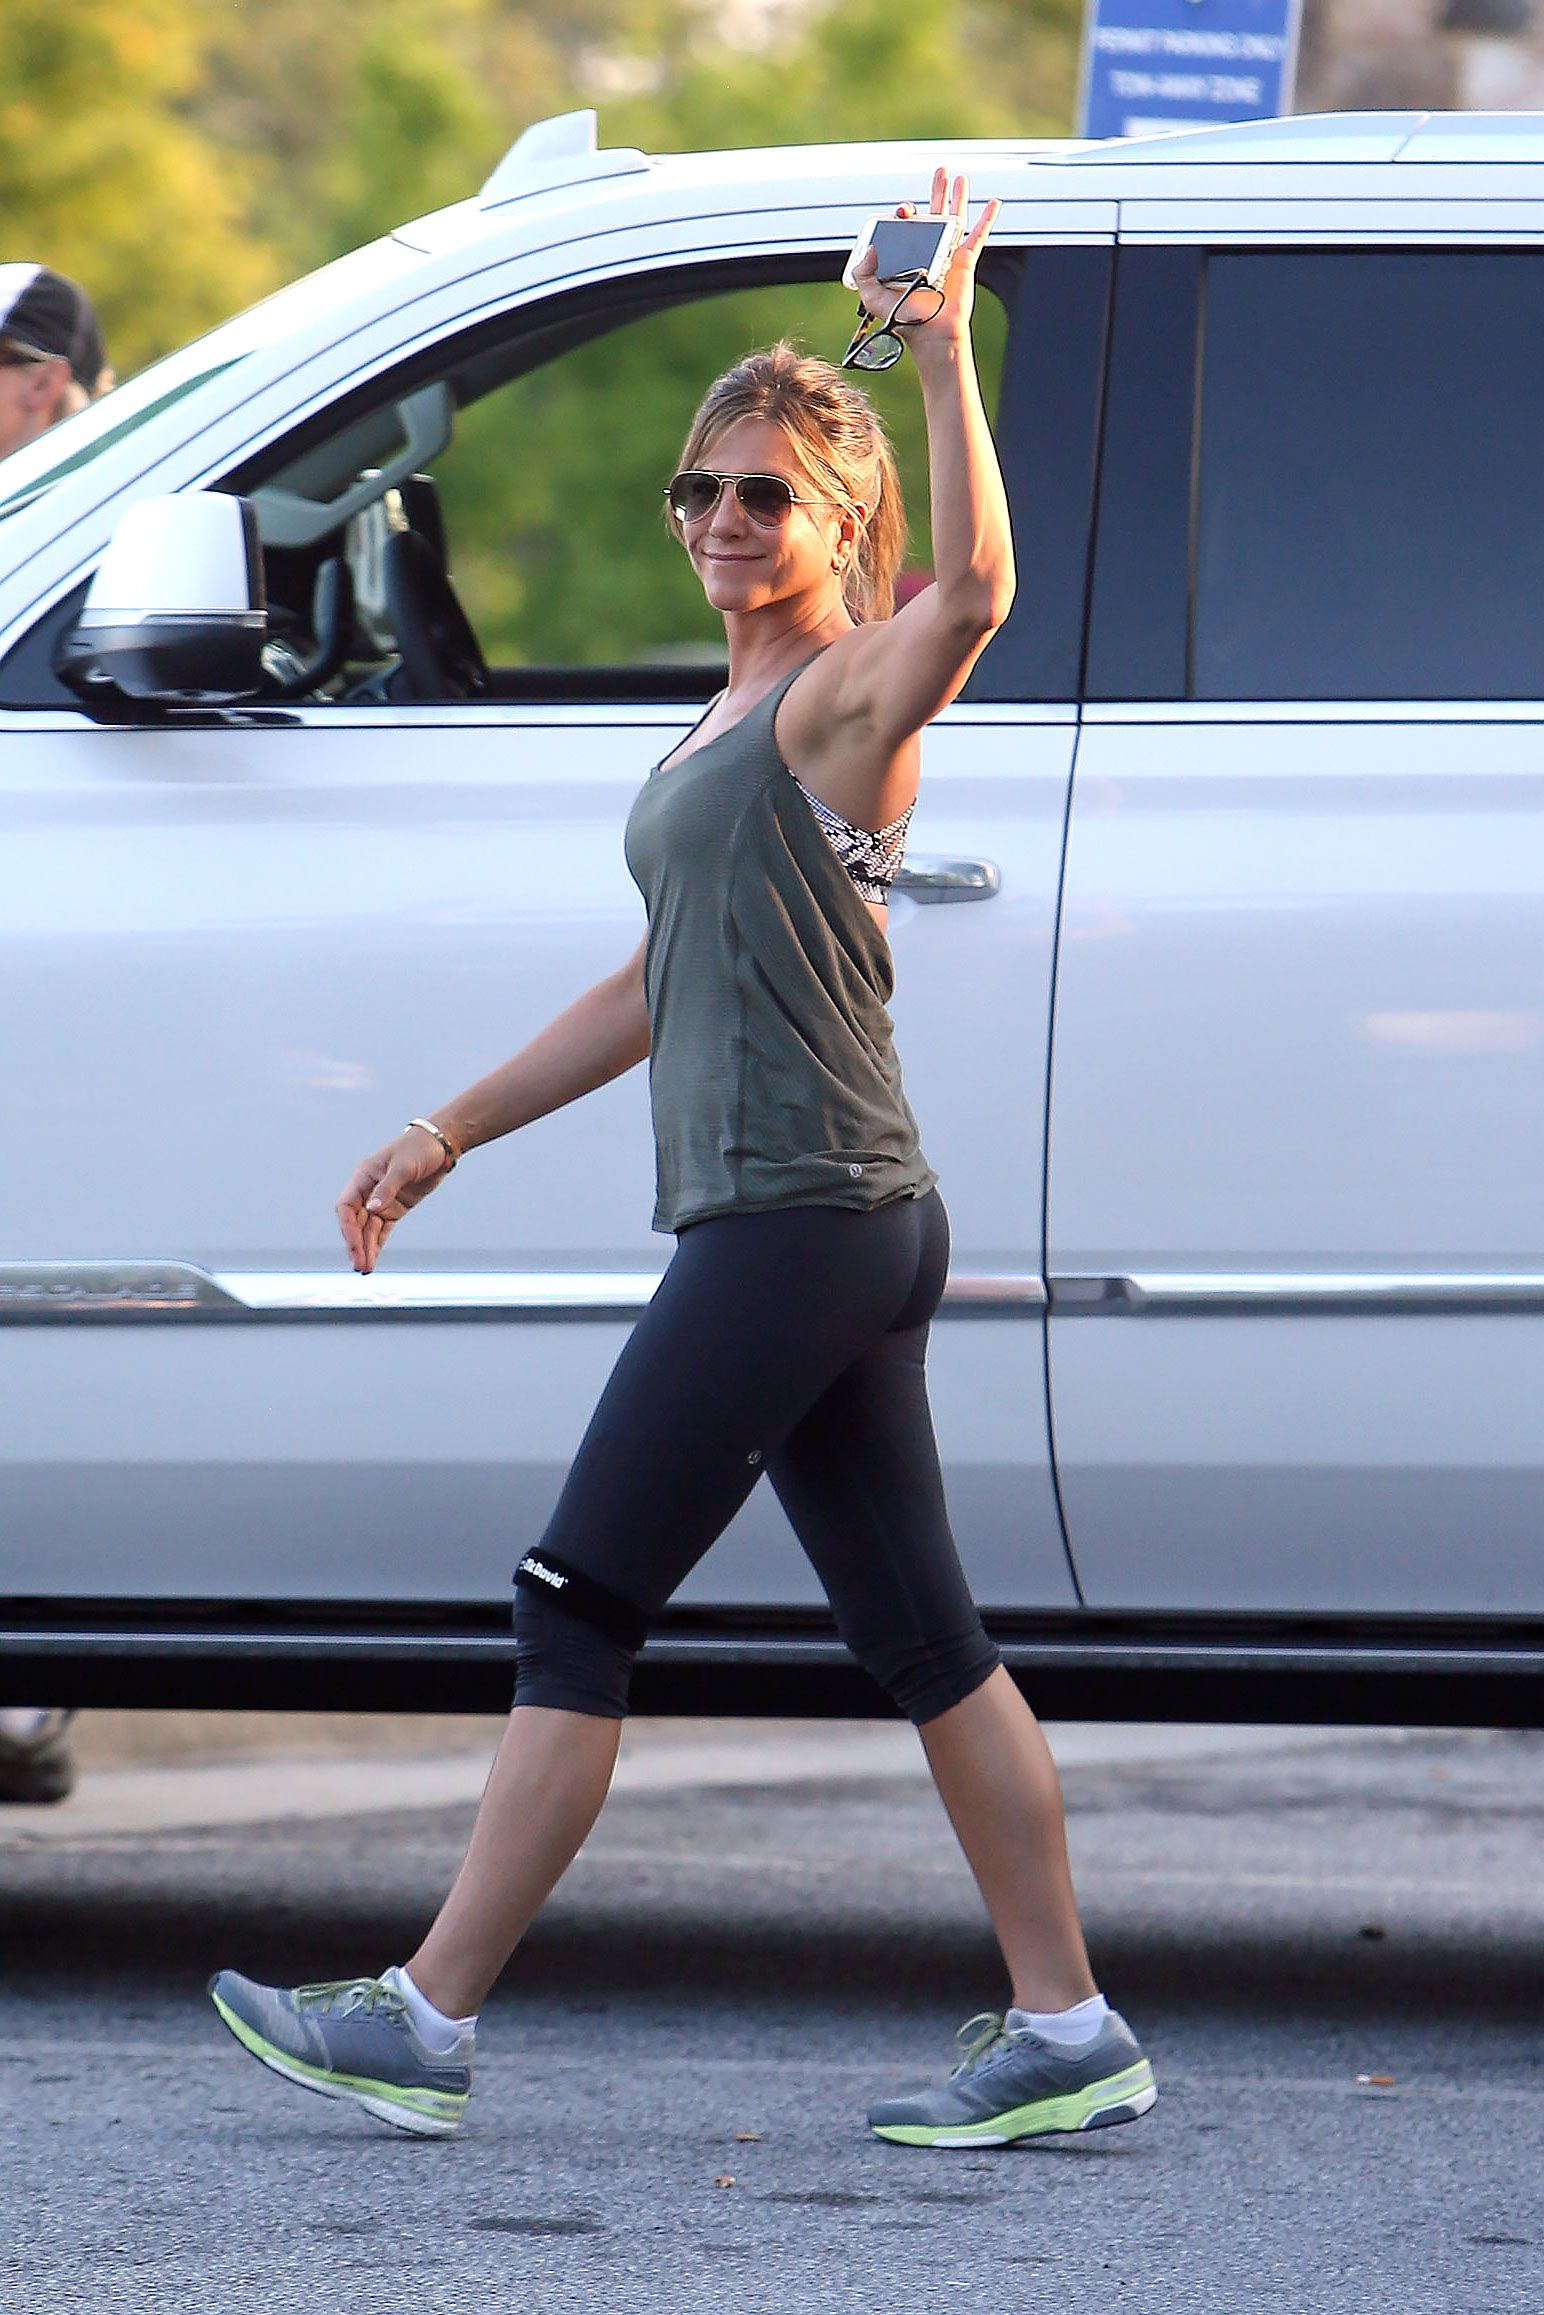 Jennifer aniston workout clothes pictures jpg pictures to pin on